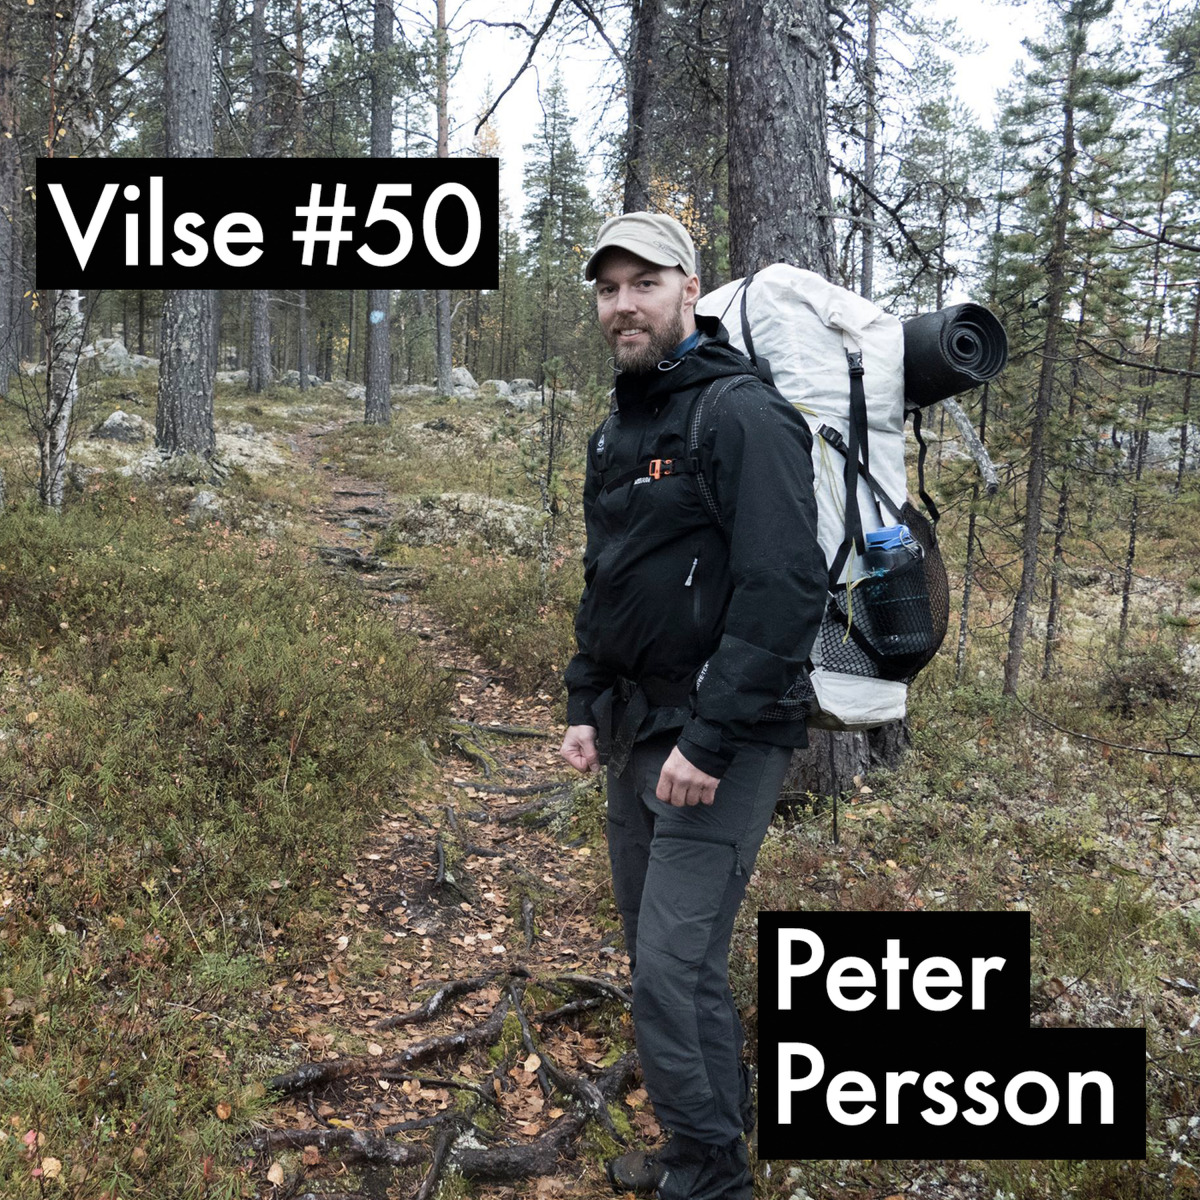 Vilse_Peter_Persson